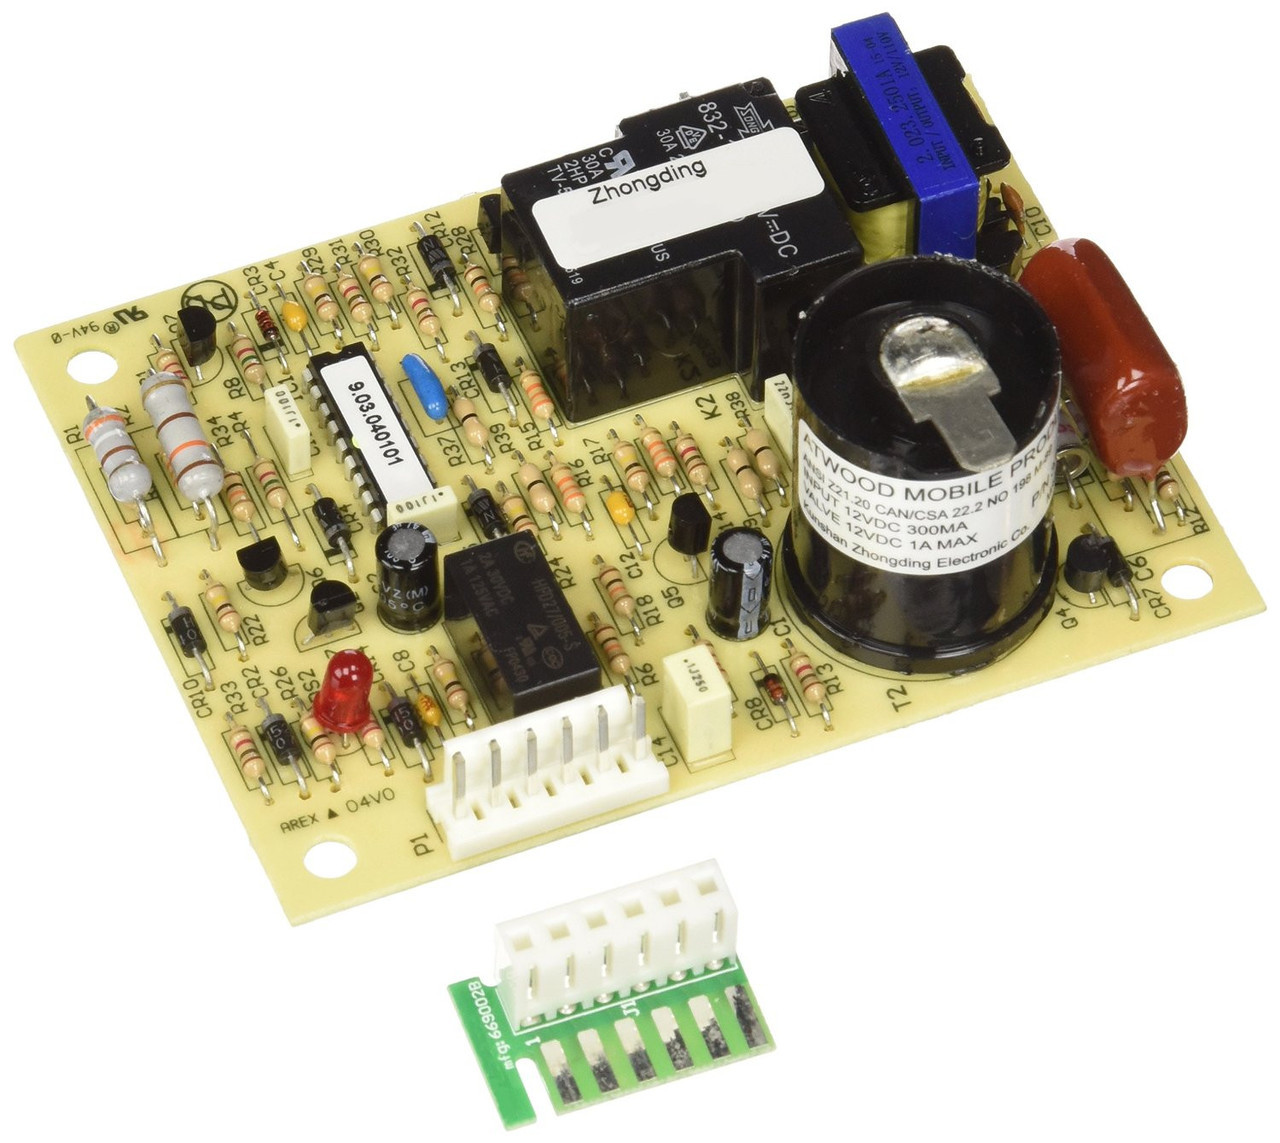 Atwood 8935 Furnace Wiring Diagram Rv Not Lossing Hydro Flame Hydroflame Ignition Control Board And Adapter Rh Rvsupplies Com 8531 Parts